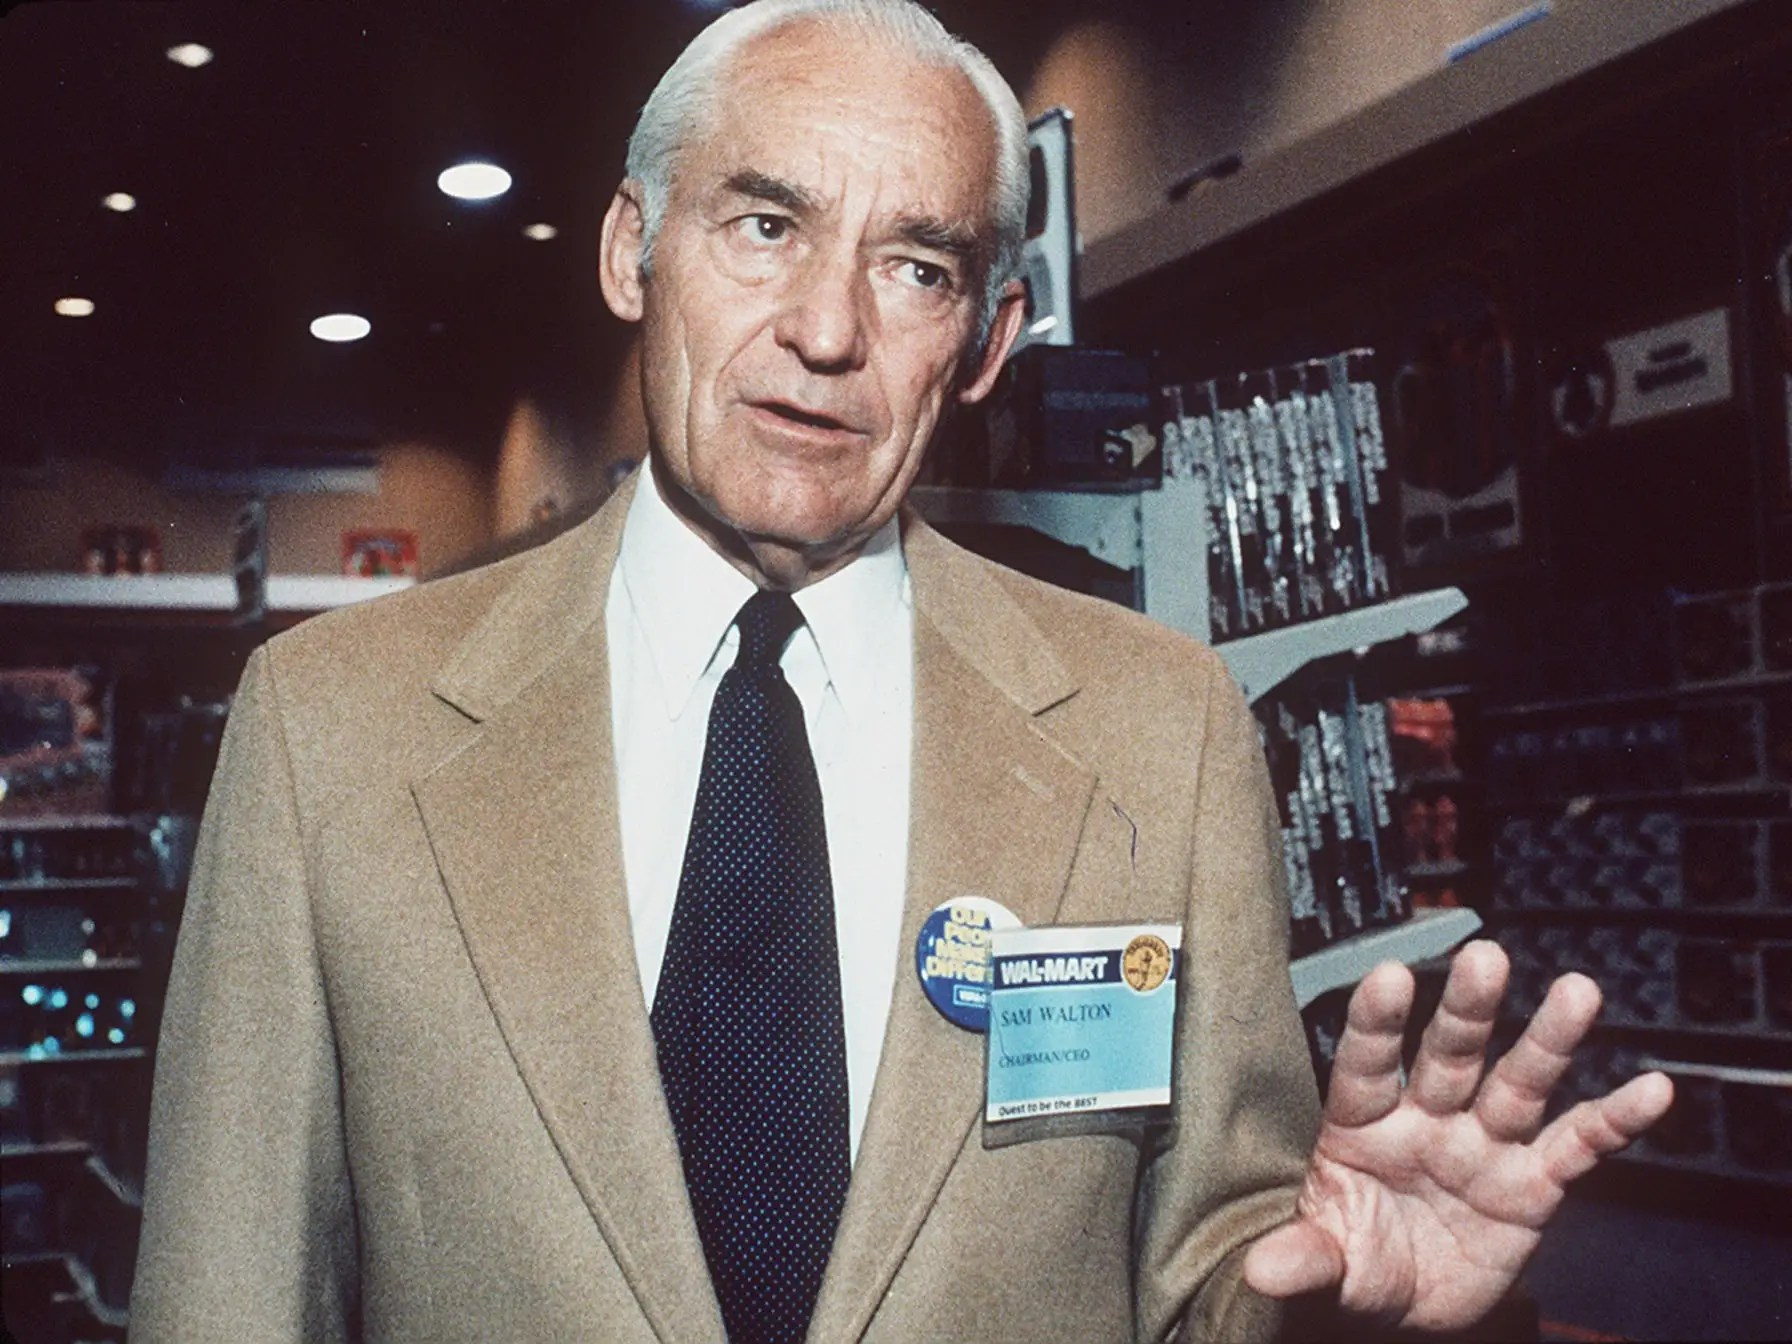 Before Sam Walton founded Walmart, he milked cows and sold magazines in Oklahoma.